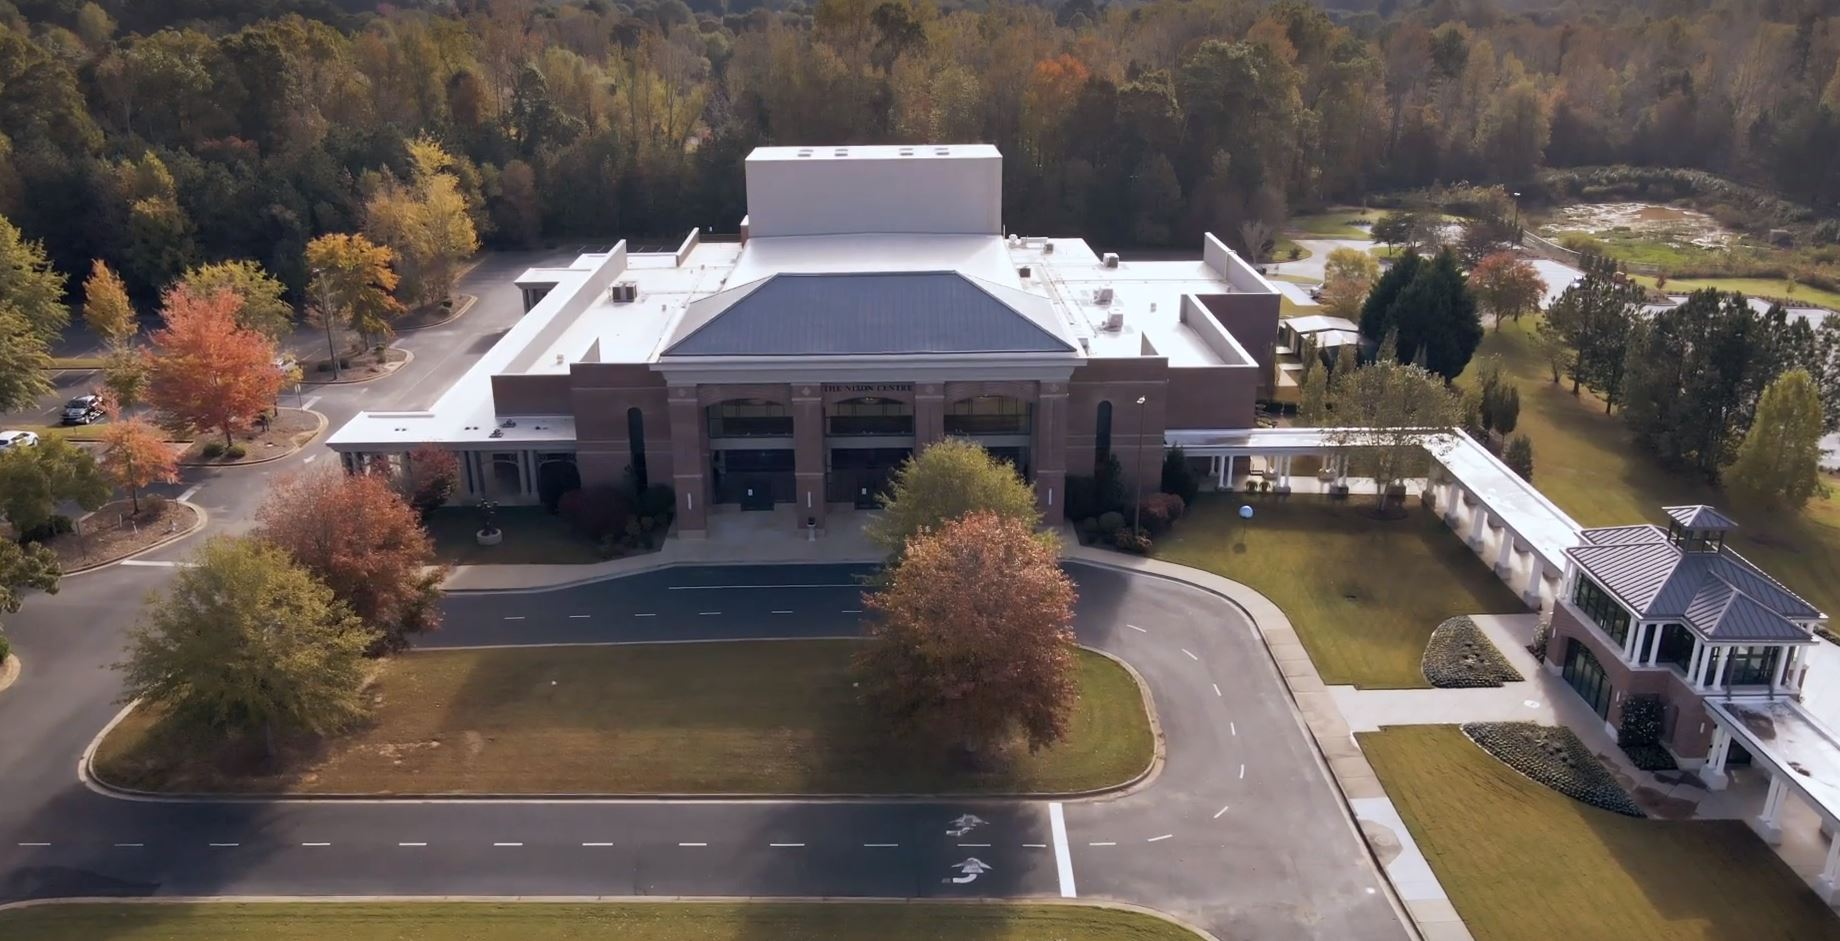 Aerial shot of the Donald W. Nixon Centre's newly renovated facility in Newnan, GA. Image courtesy of the Coweta County School System.